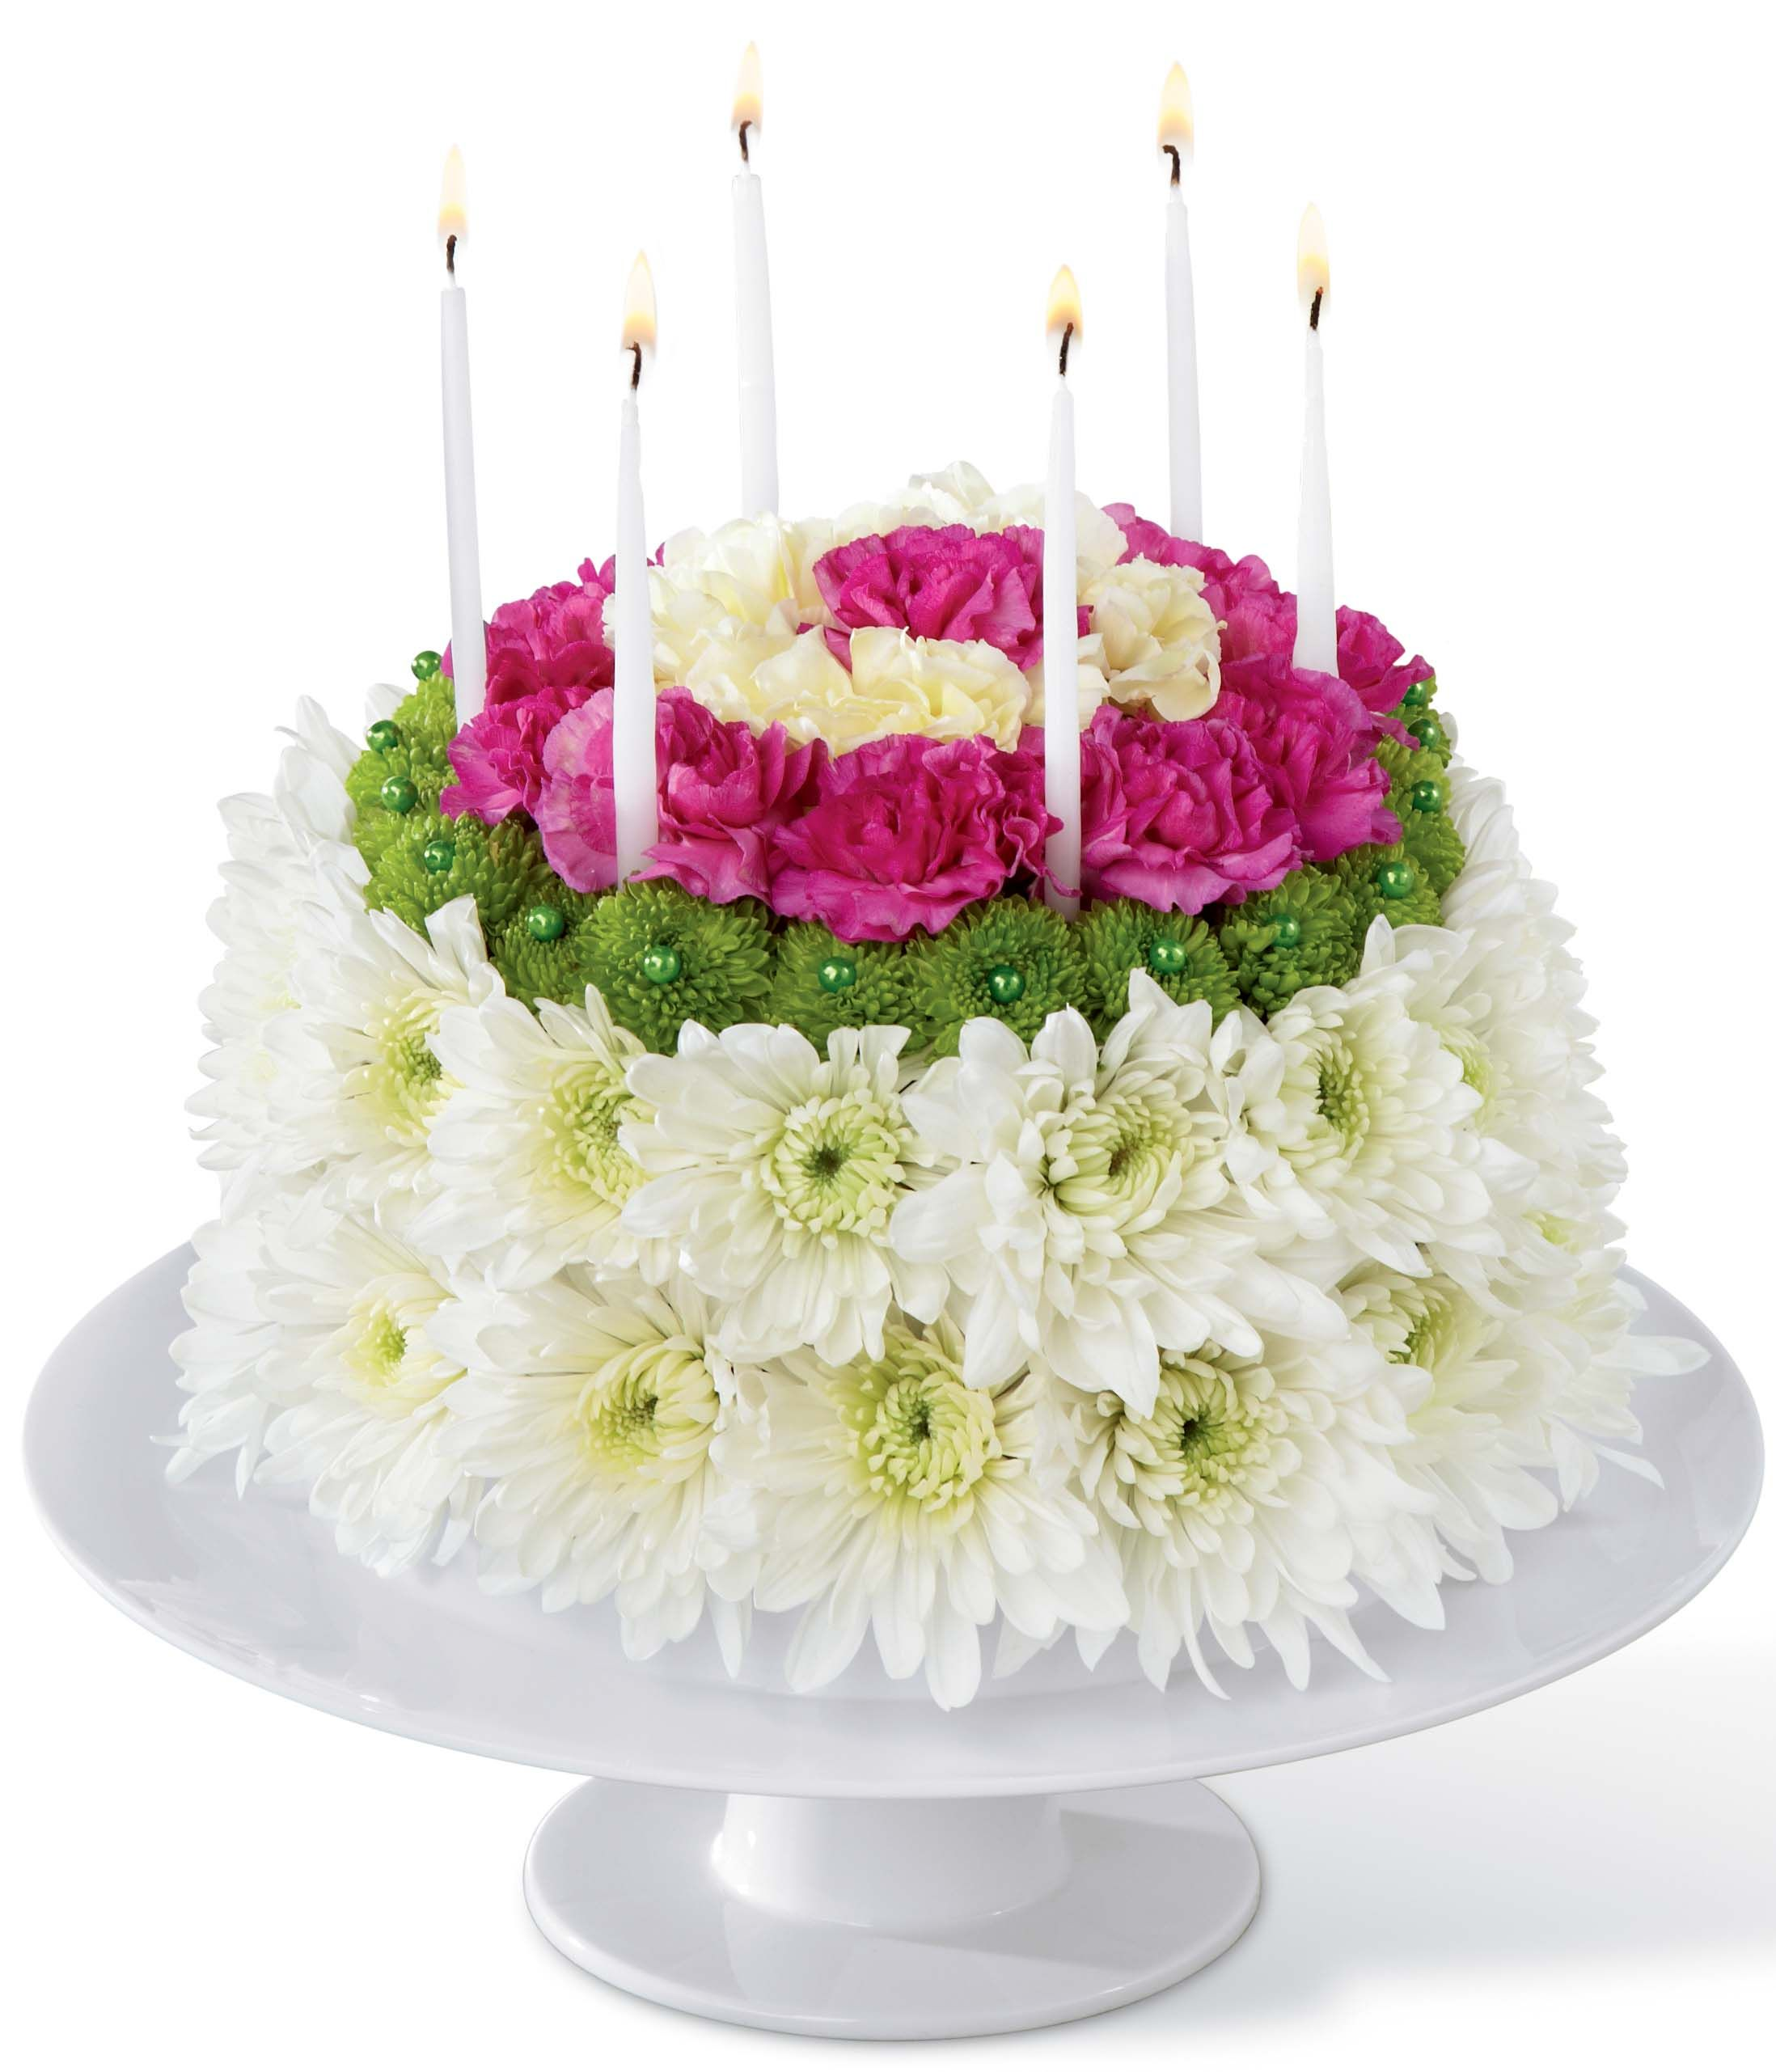 Say Happy Birthday with our Calorie Free Floral Birthday